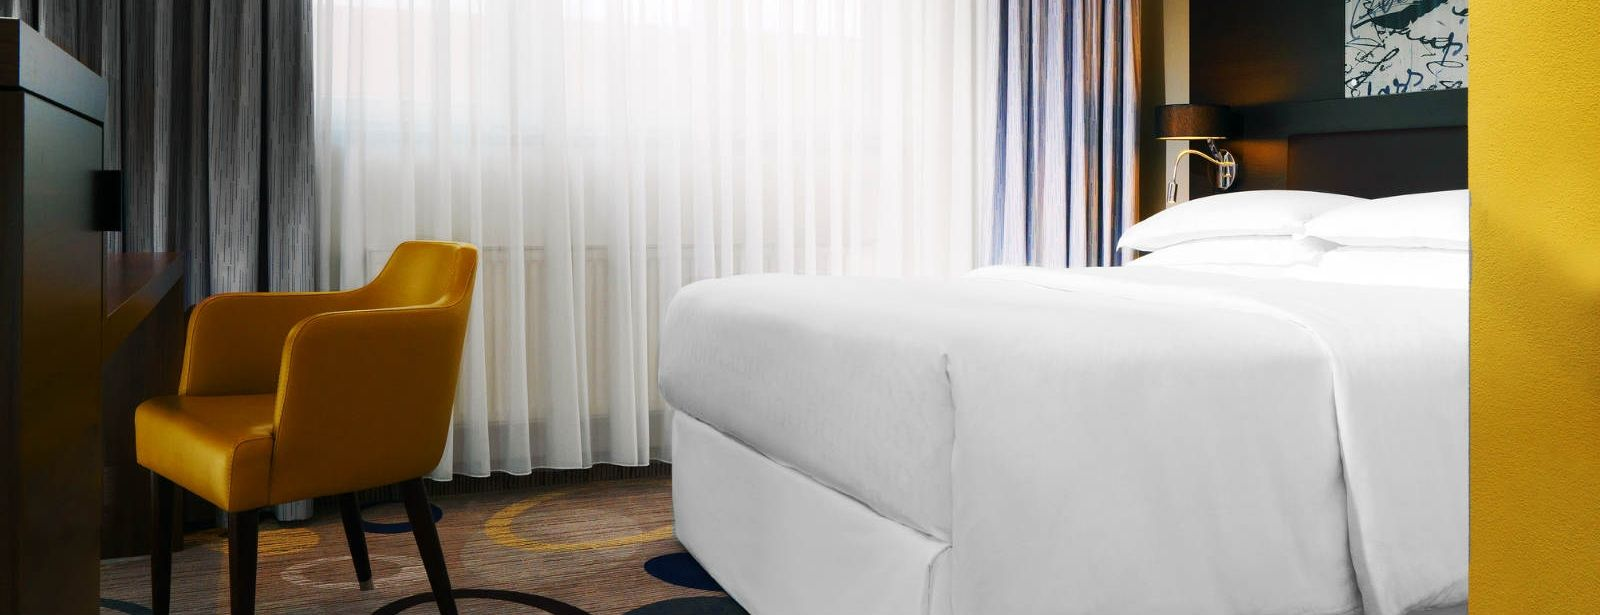 Executive Rooms - Sheraton Hannover Pelikan Hotel